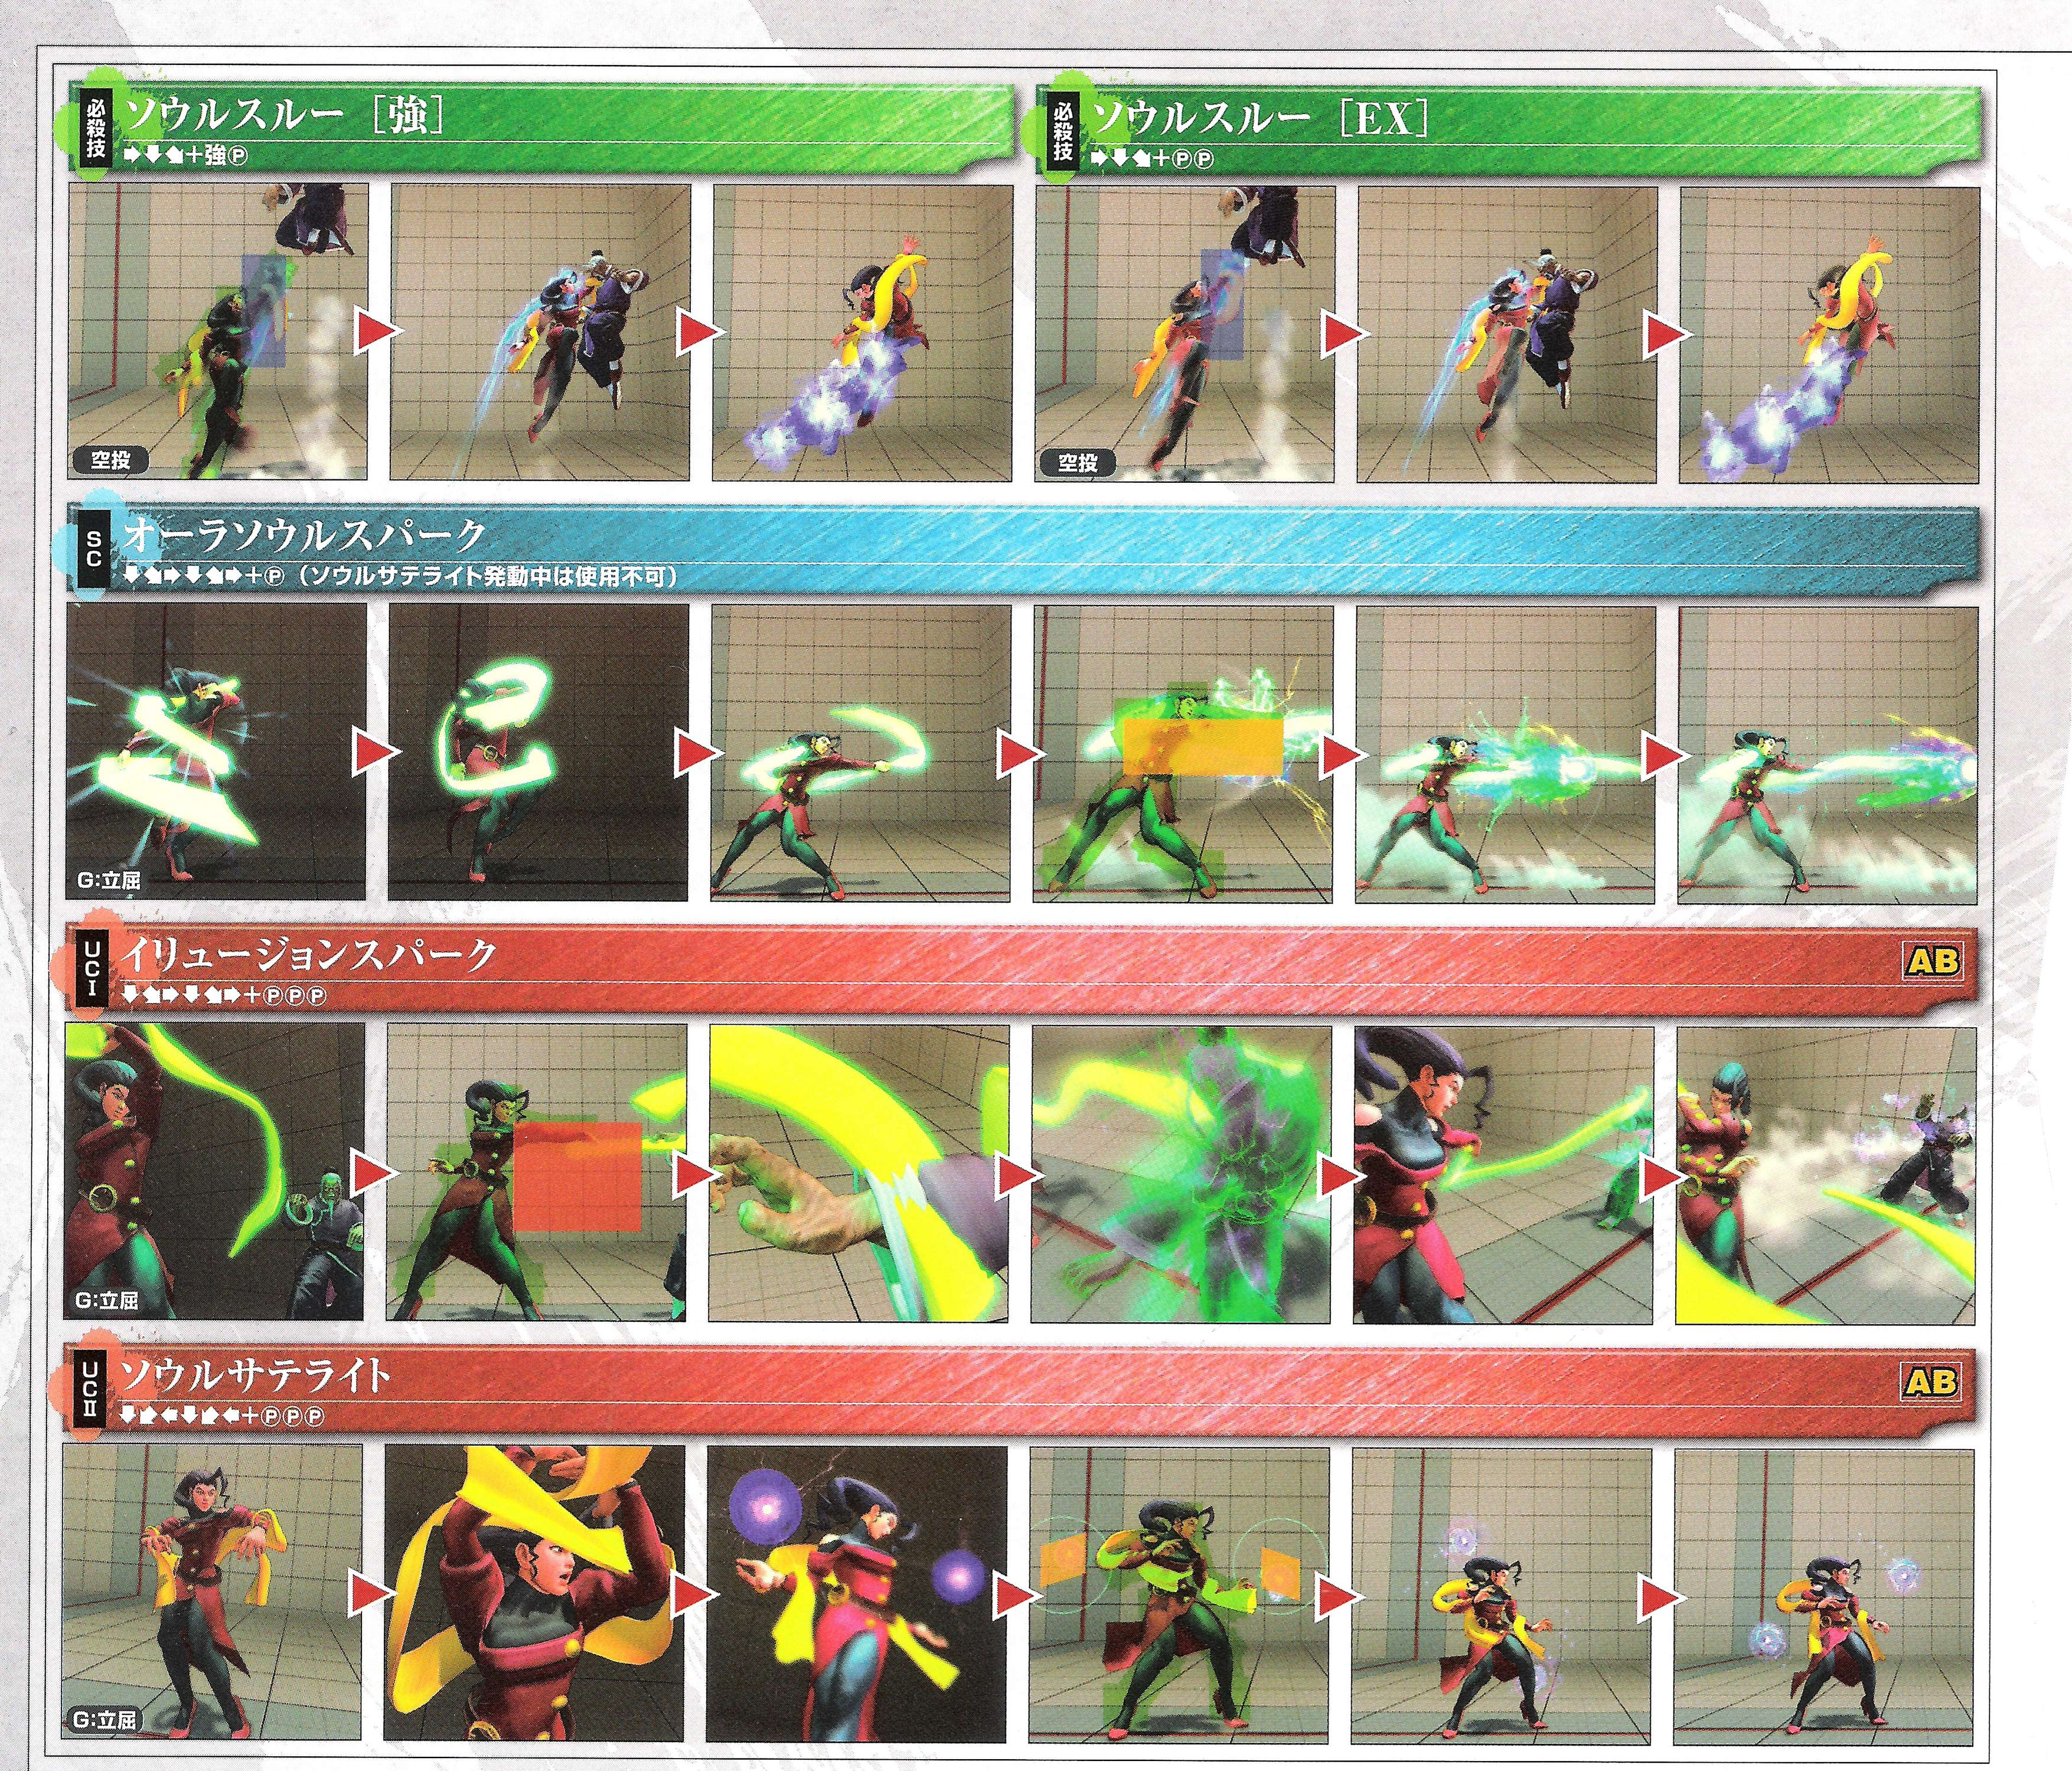 Rose's hit box information for Super Street Fighter 4 Arcade Edition image #3